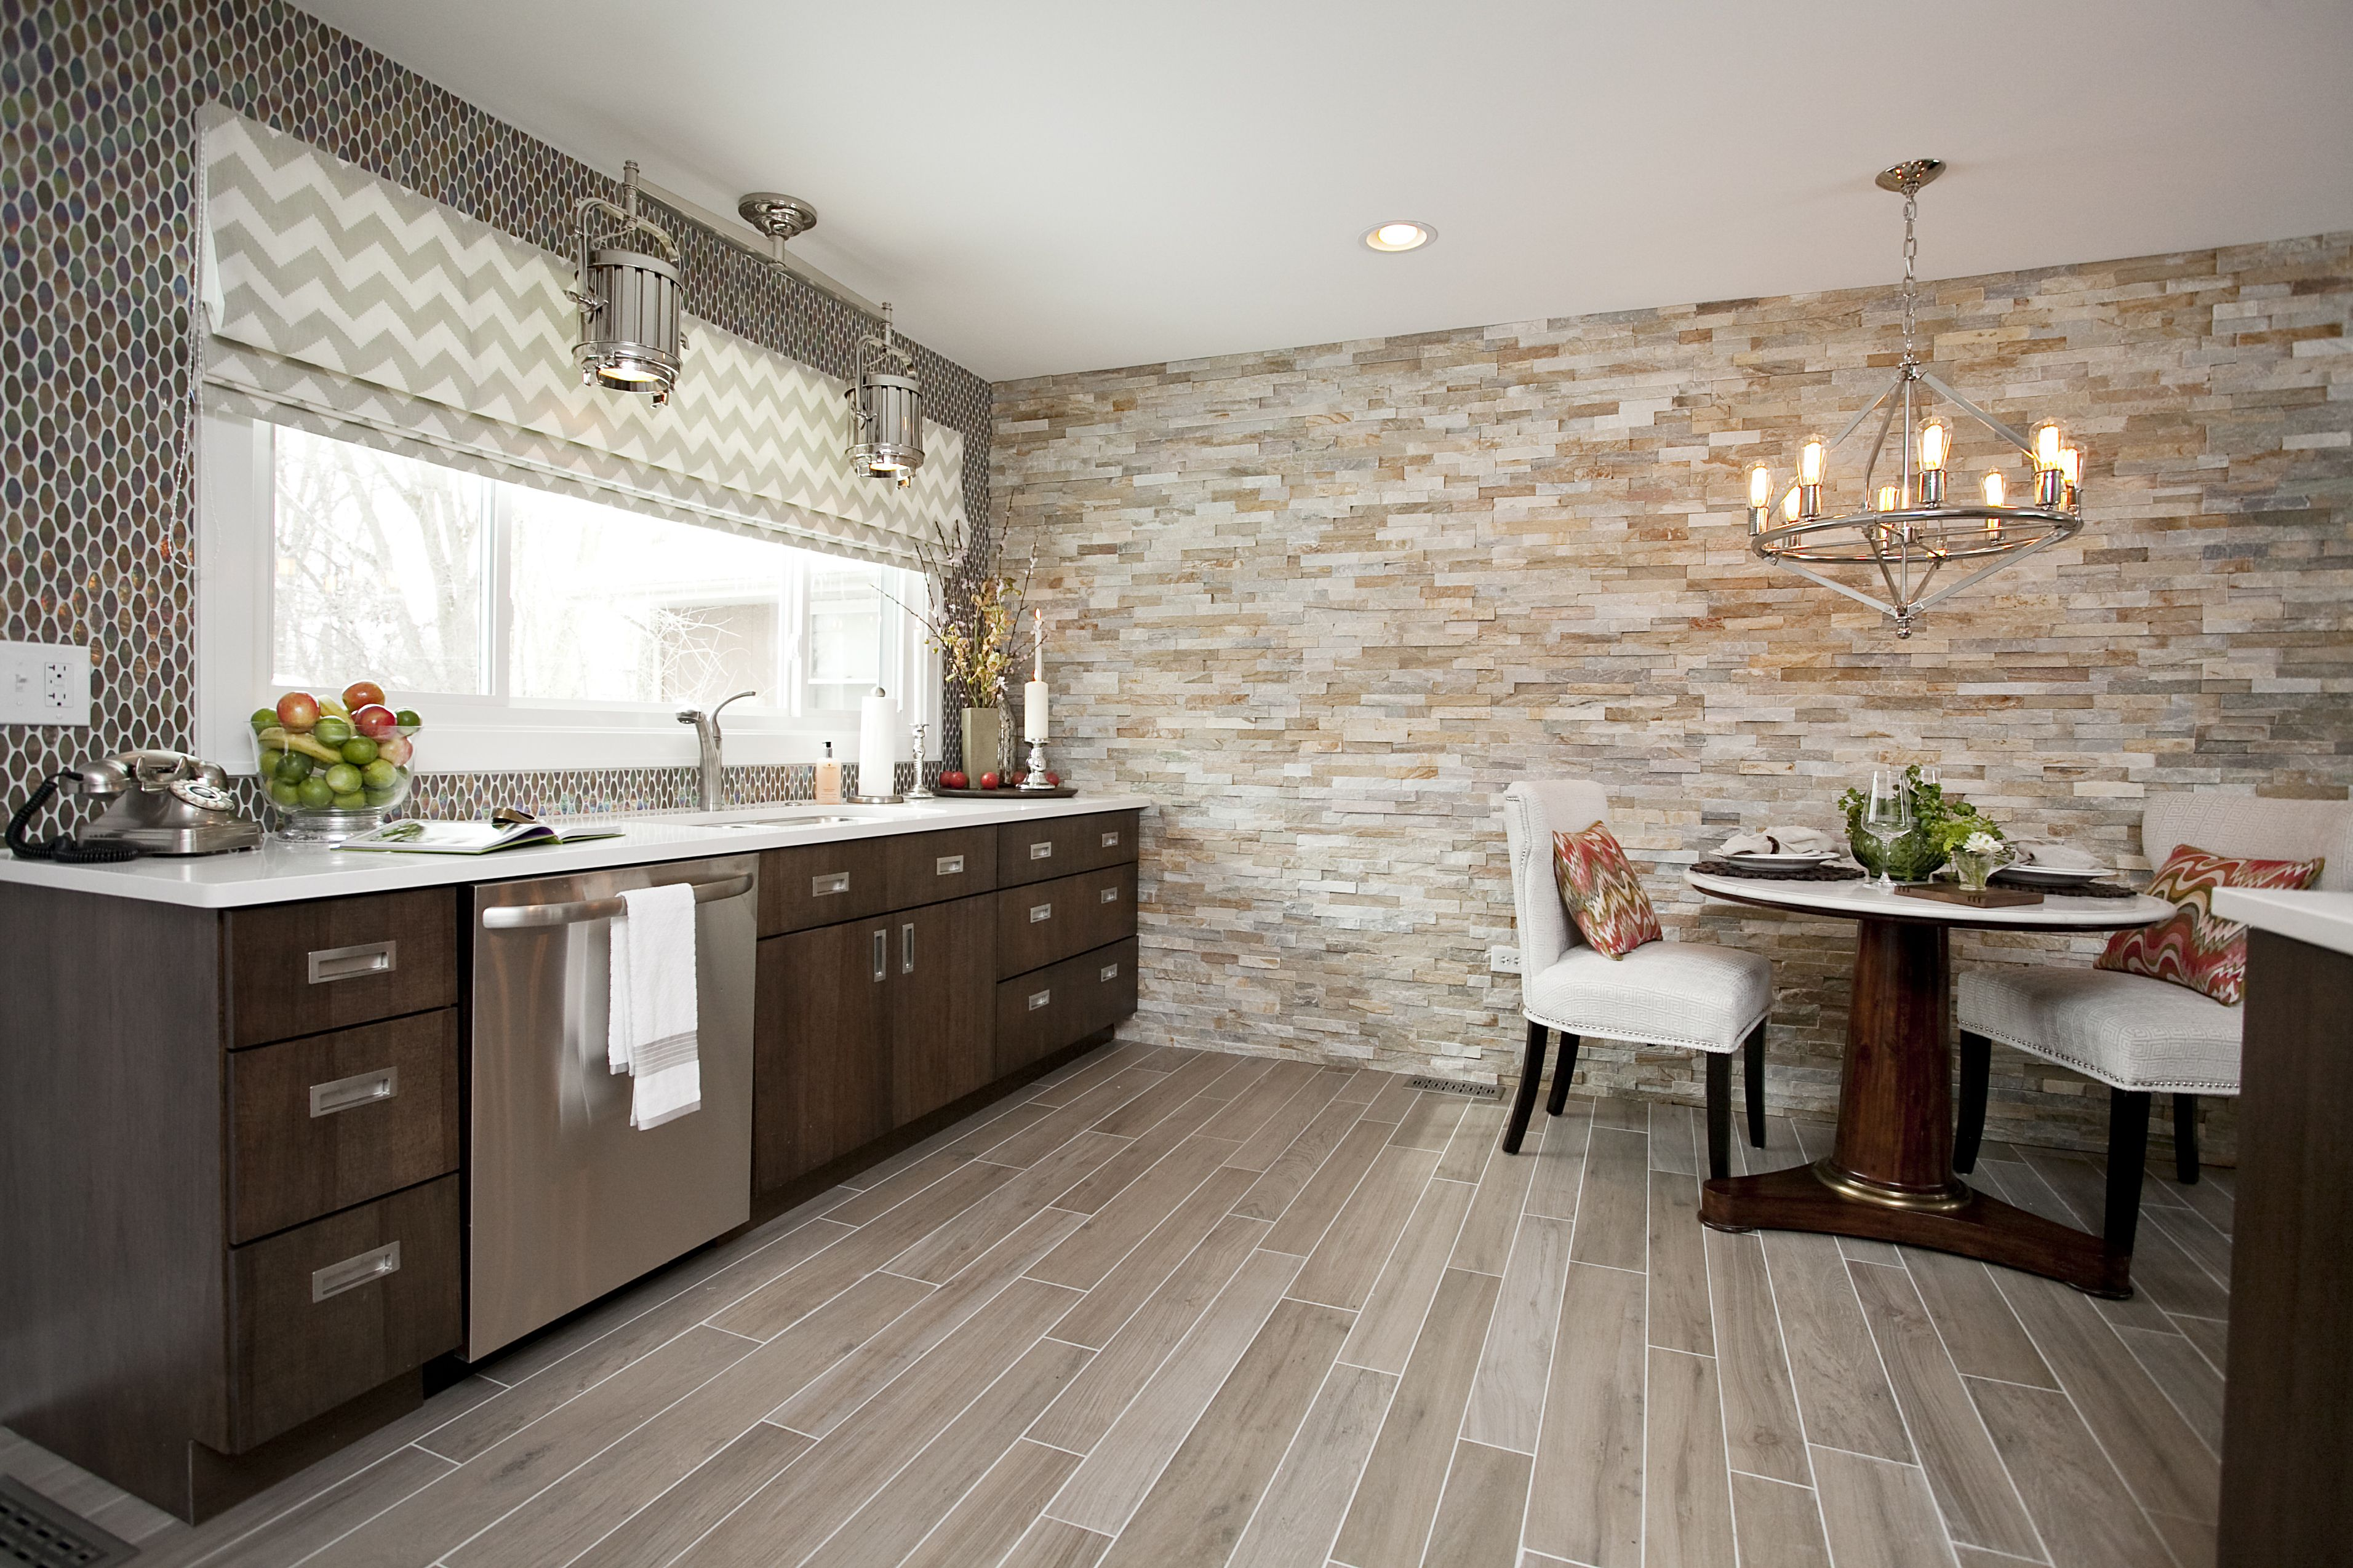 Contemporary Cabinetry, Faux Wood Floor Tile, Stacked